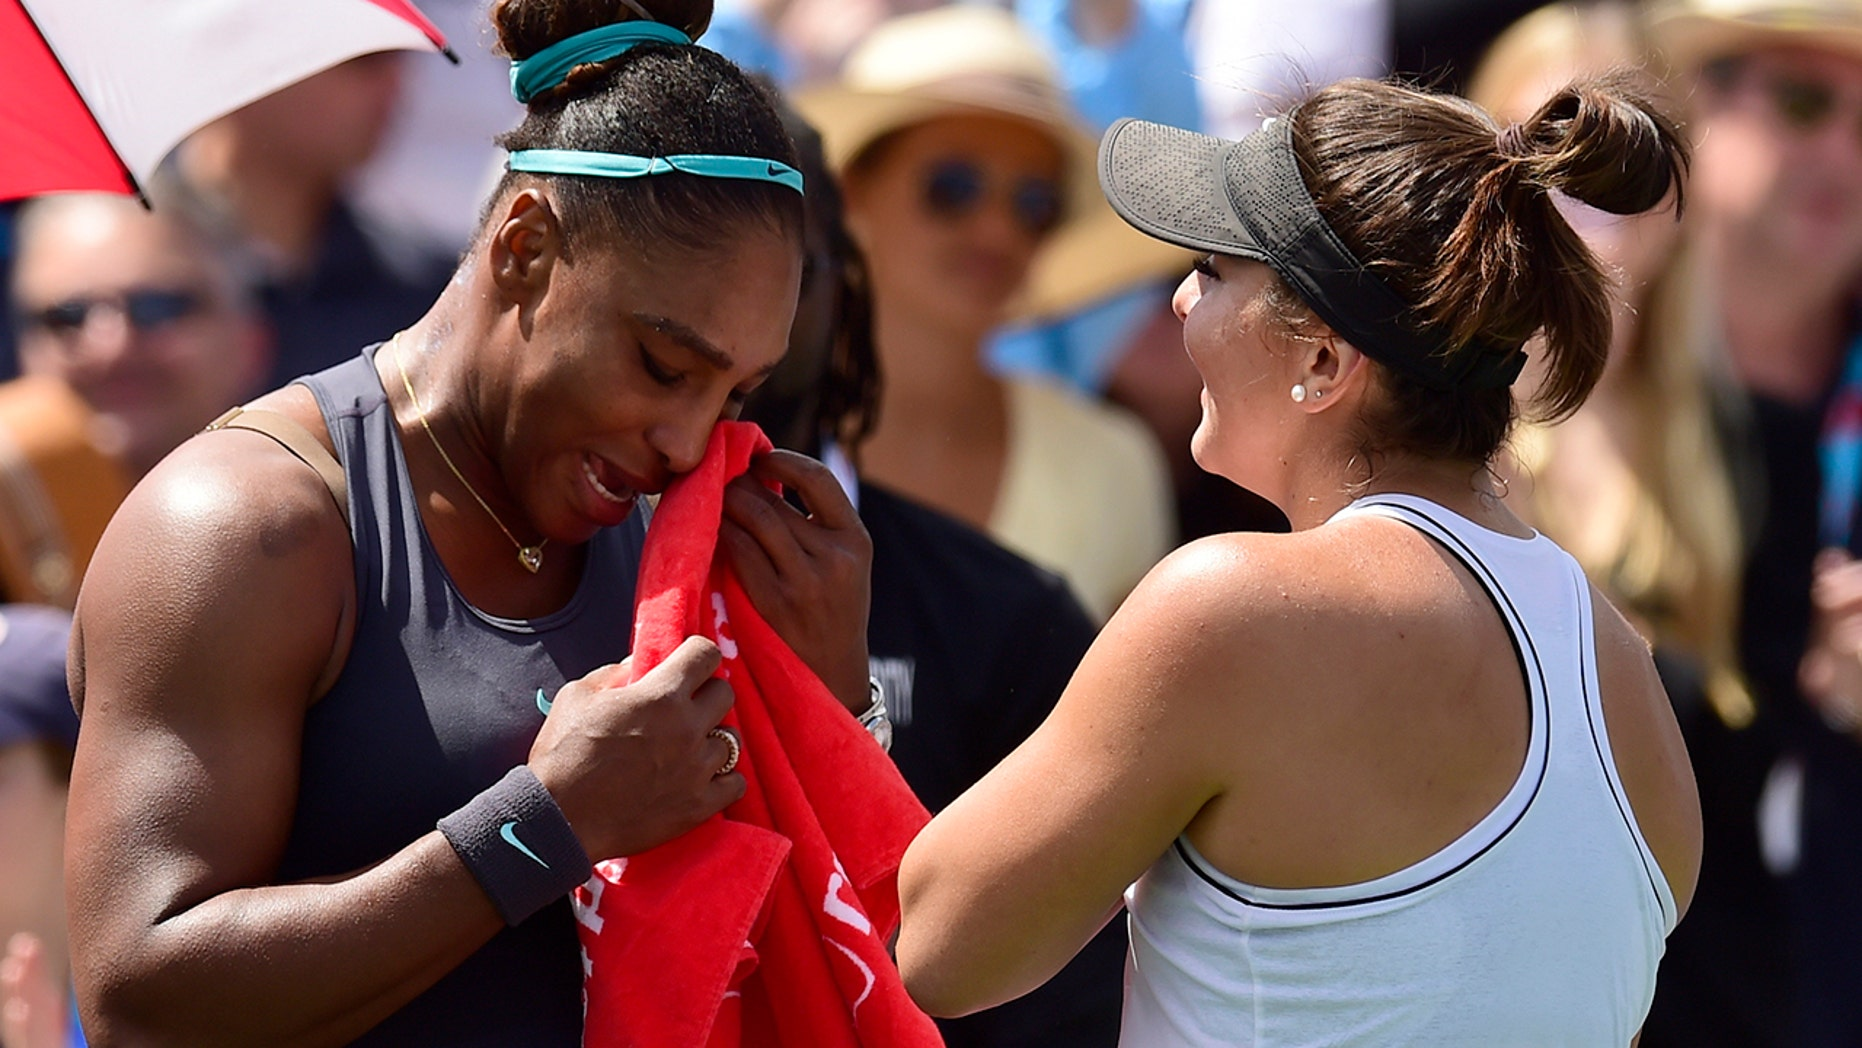 Westlake Legal Group Serena-Williams-Rogers-Cup-thumb Emotional Serena Williams retires from tournament final, opponent comforts her Gerren Keith Gaynor fox-news/sports/tennis fox-news/person/serena-williams fox news fnc/sports fnc d24cf8fd-948b-520b-9369-fc91b9a7276b article